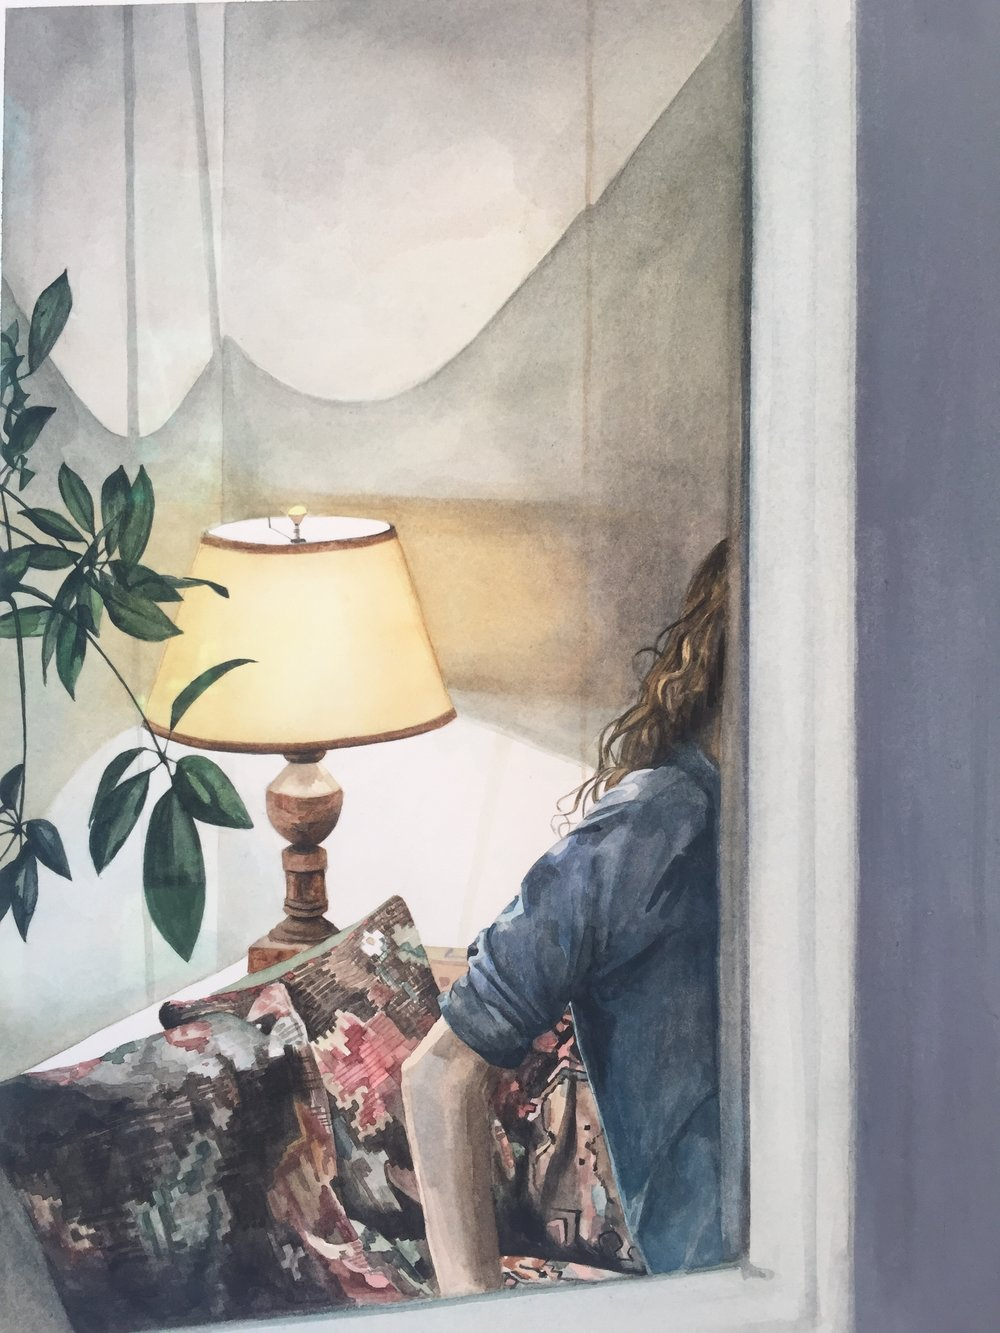 Heather Goodchild, Lamp through backdoor, 2016, watercolor on paper, 12 x 9 inches.